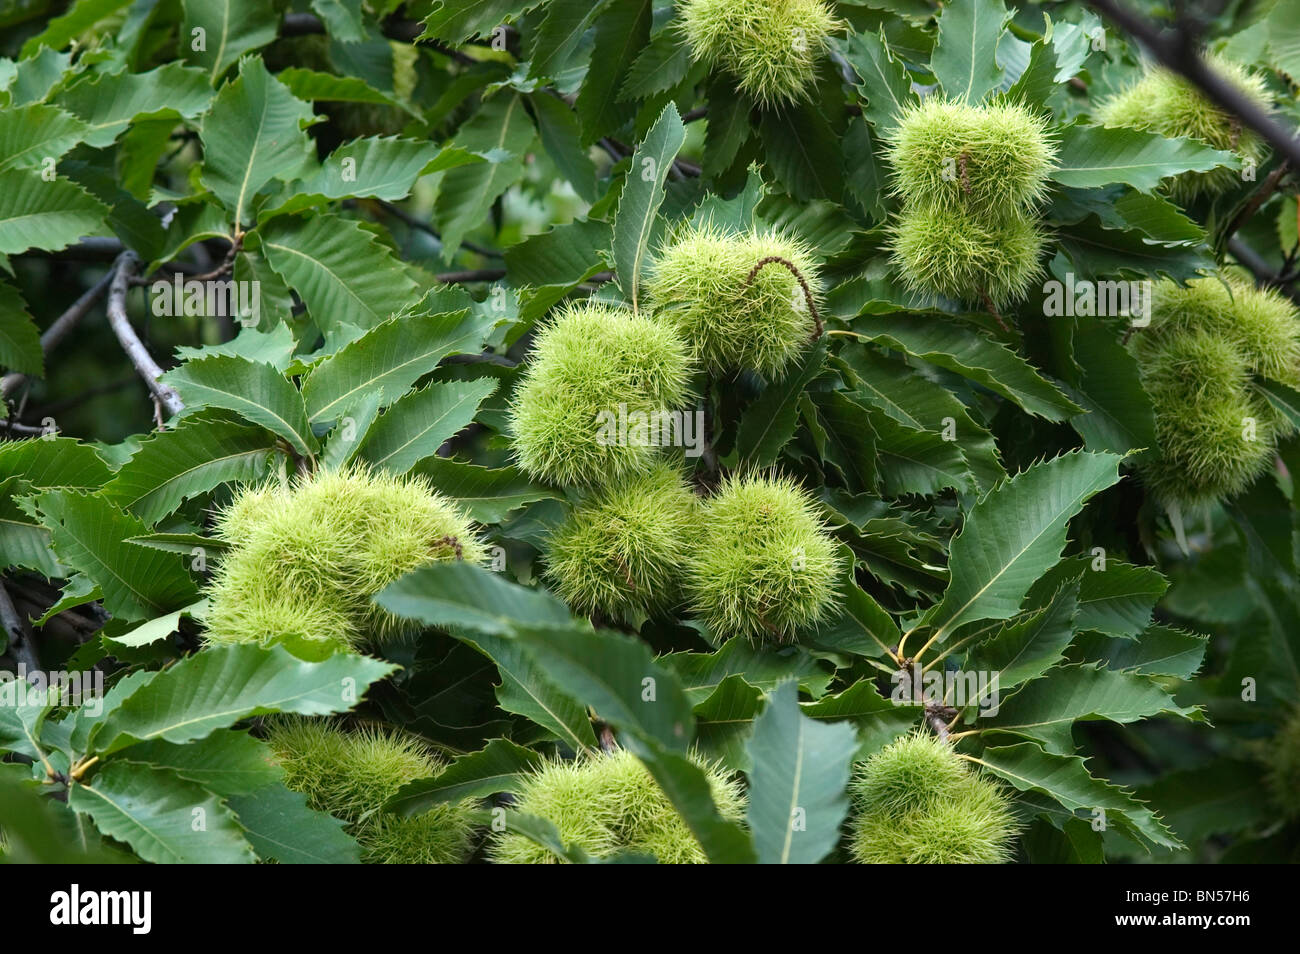 Fruit on managed sweet chestnut (Castanea sativa) trees, Switzerland - Stock Image